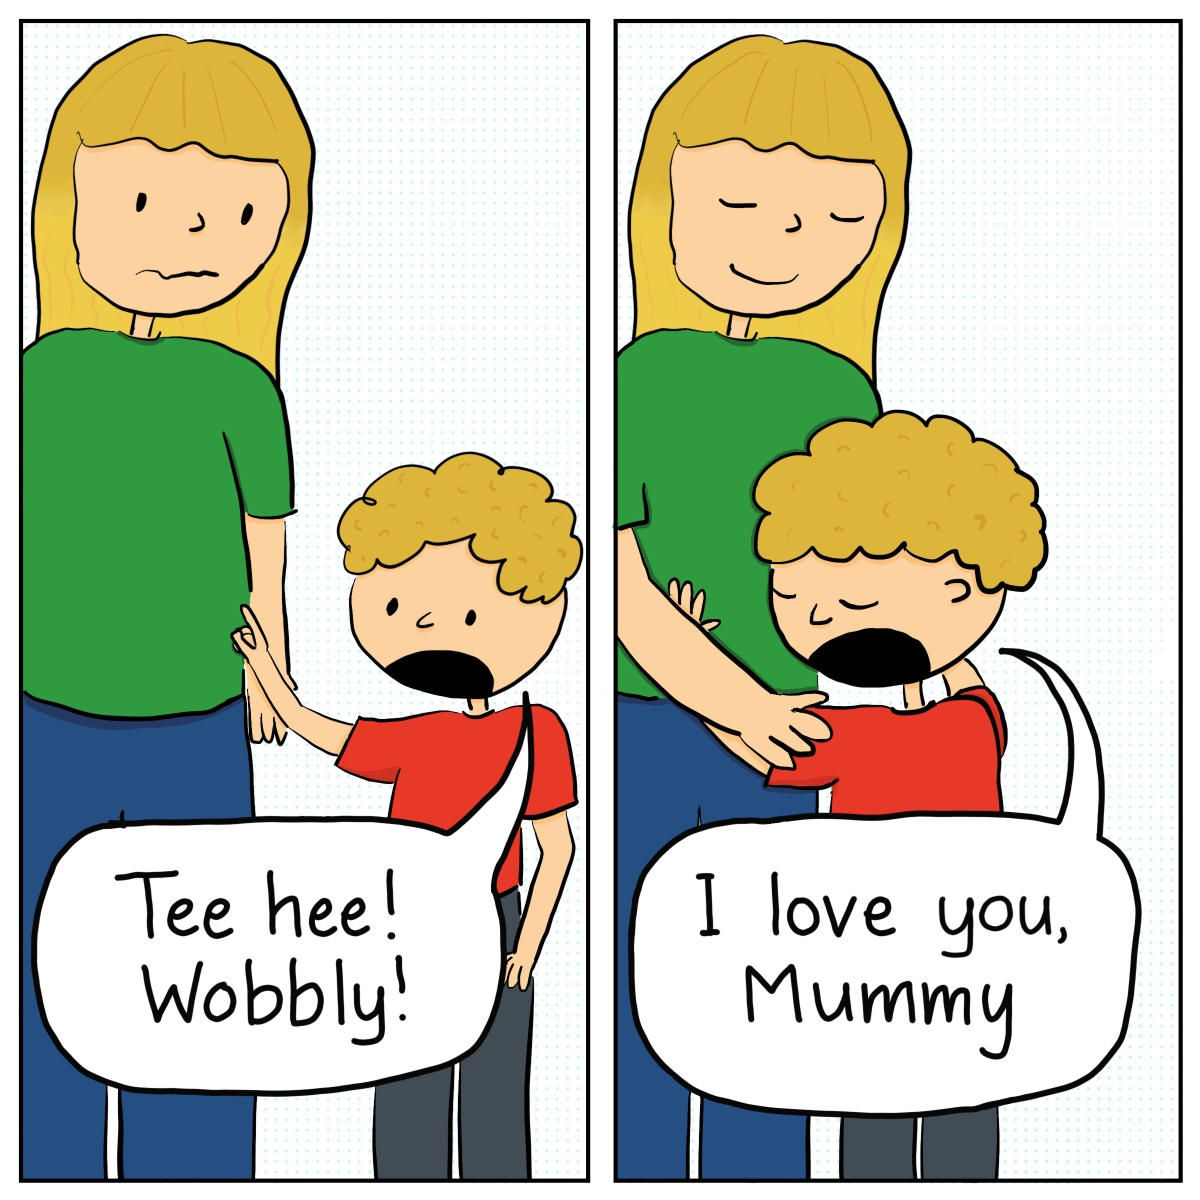 """A cartoon of a child poking his mother's belly and saying """"Tee tee! Wobbly!"""" then the next frame has the same child hugging his mother and saying """"I love you, Mummy"""""""